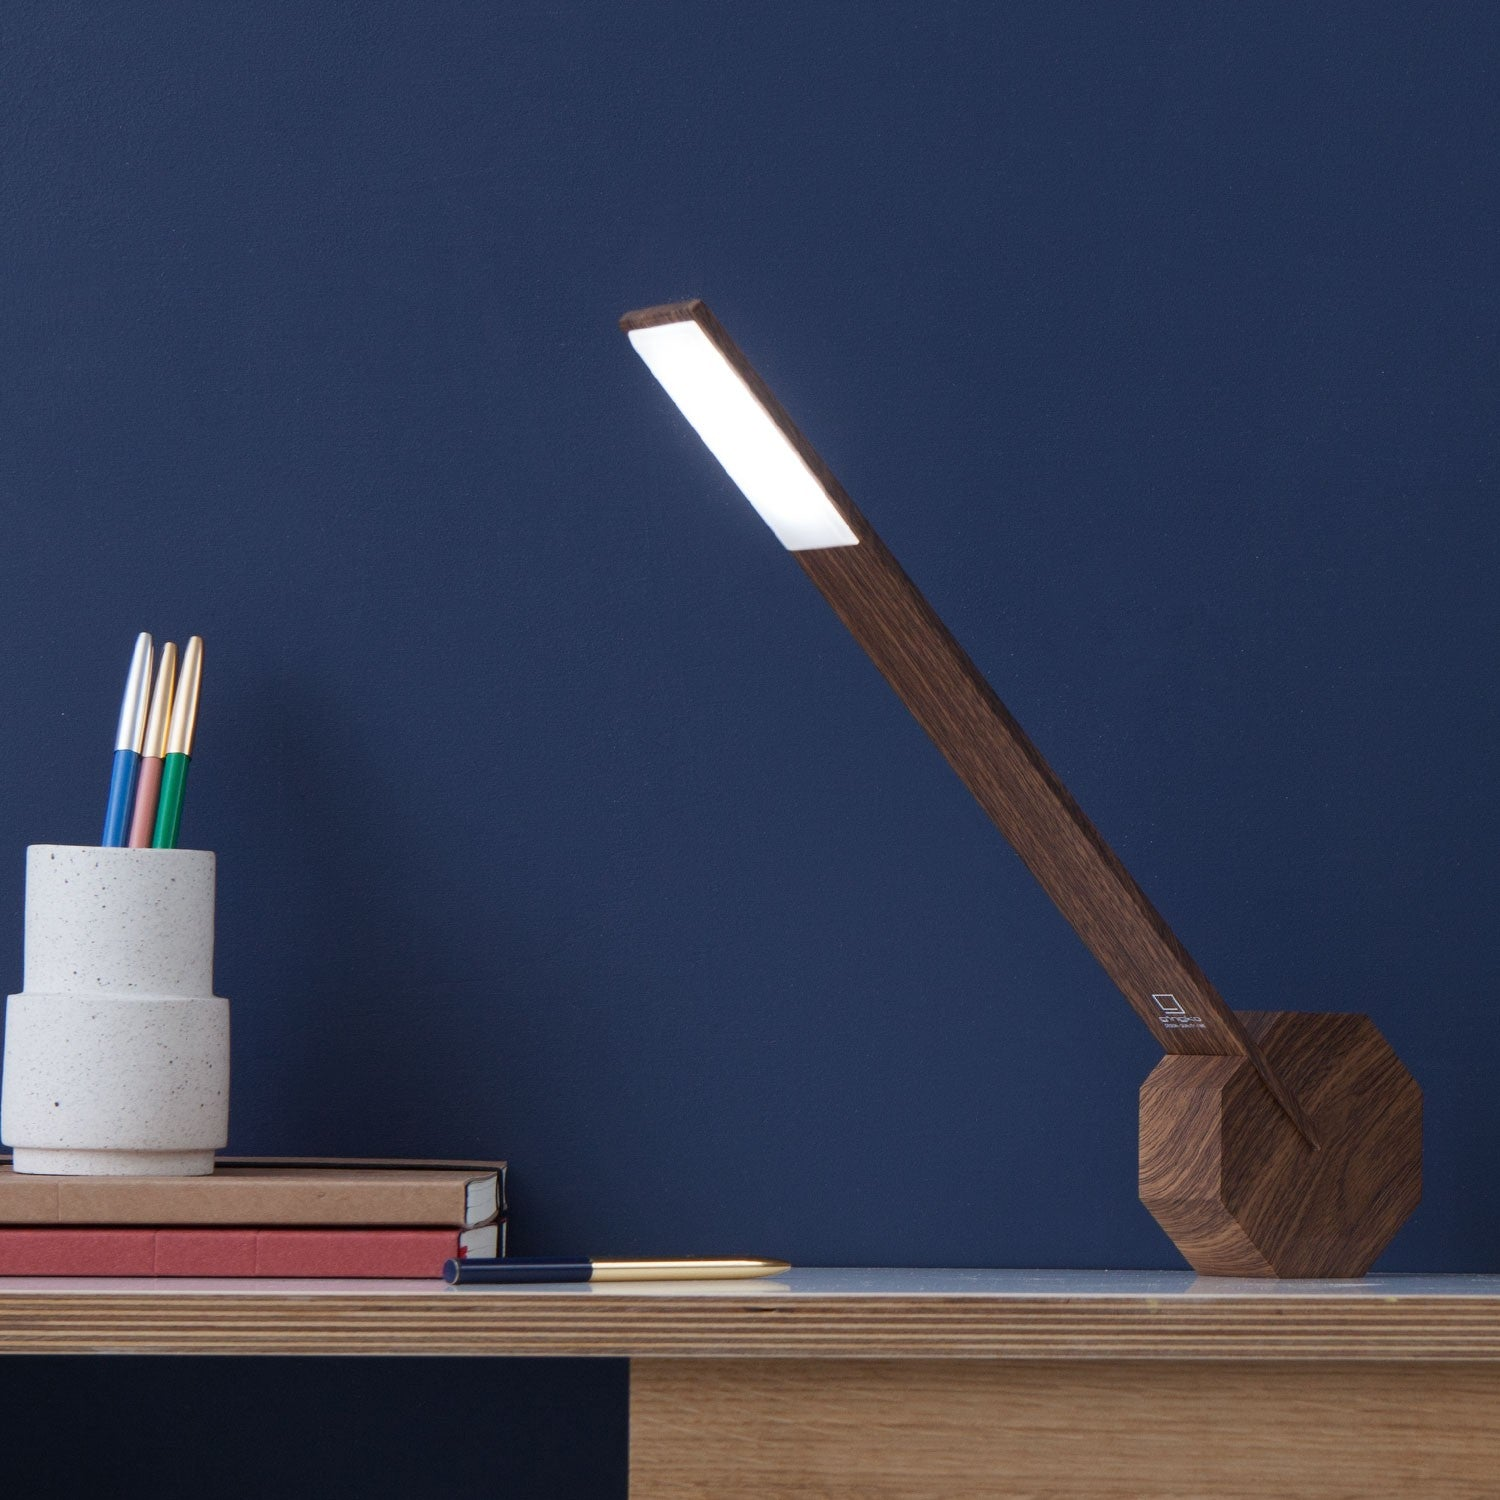 Octagon One Desk Lamp by Gingko on OOSTOR.com